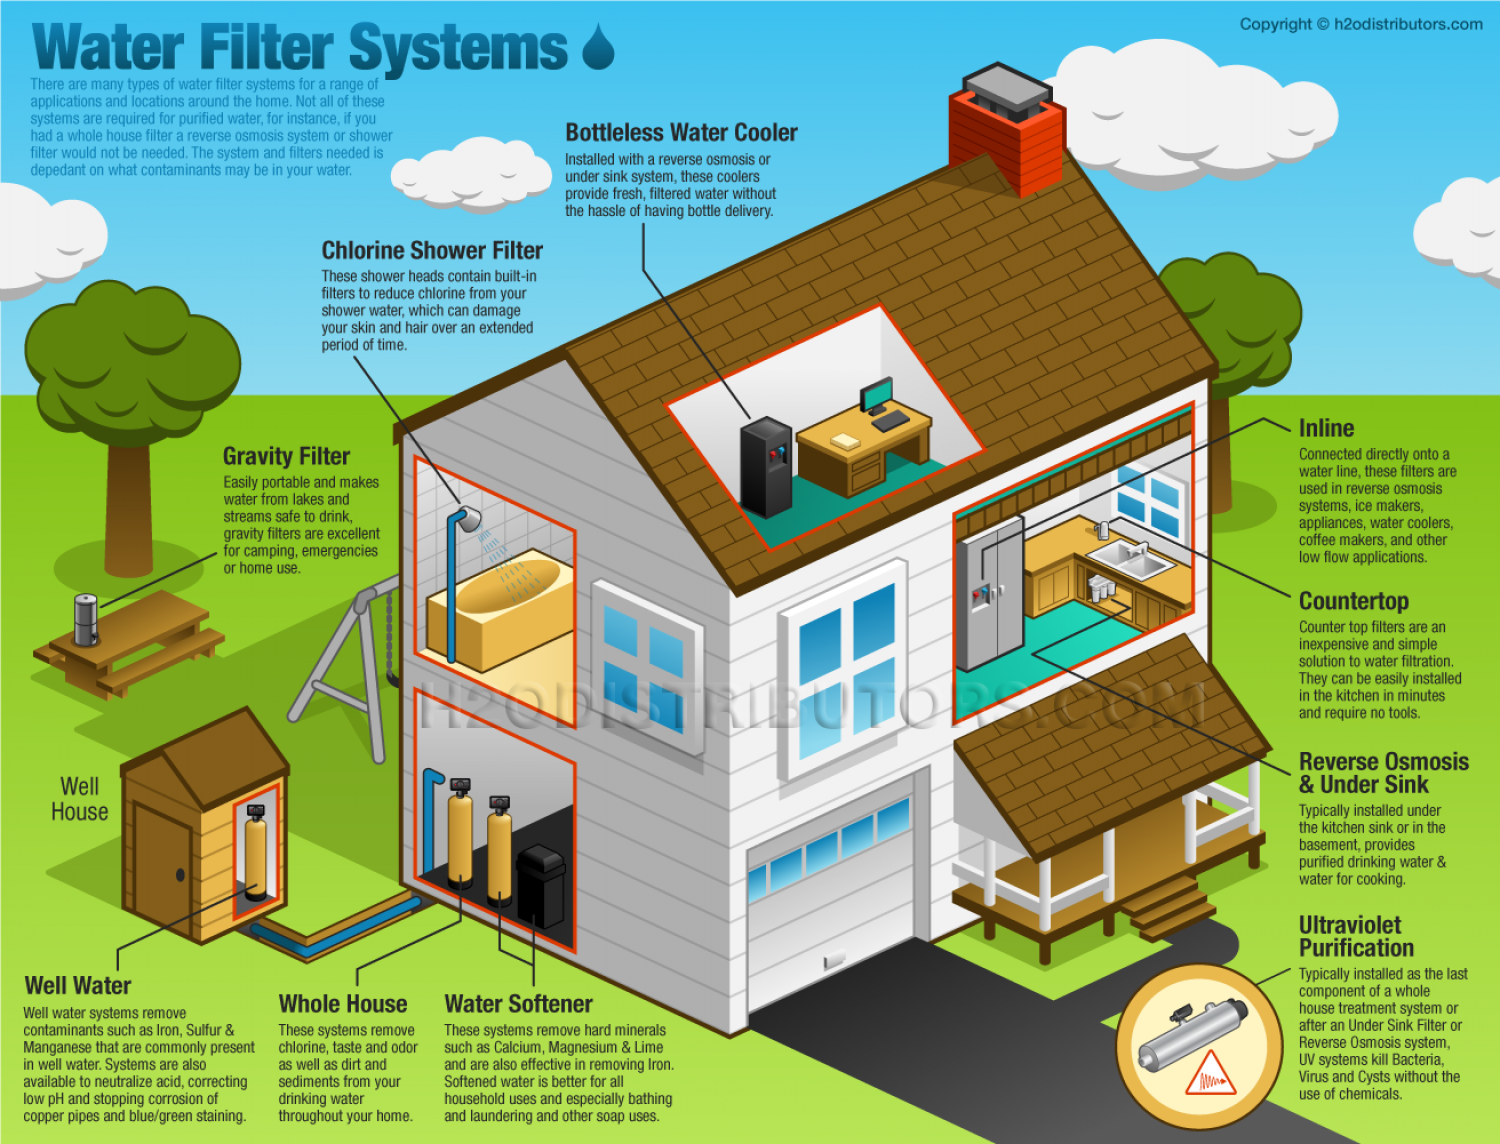 Water Filter Systems Infographic